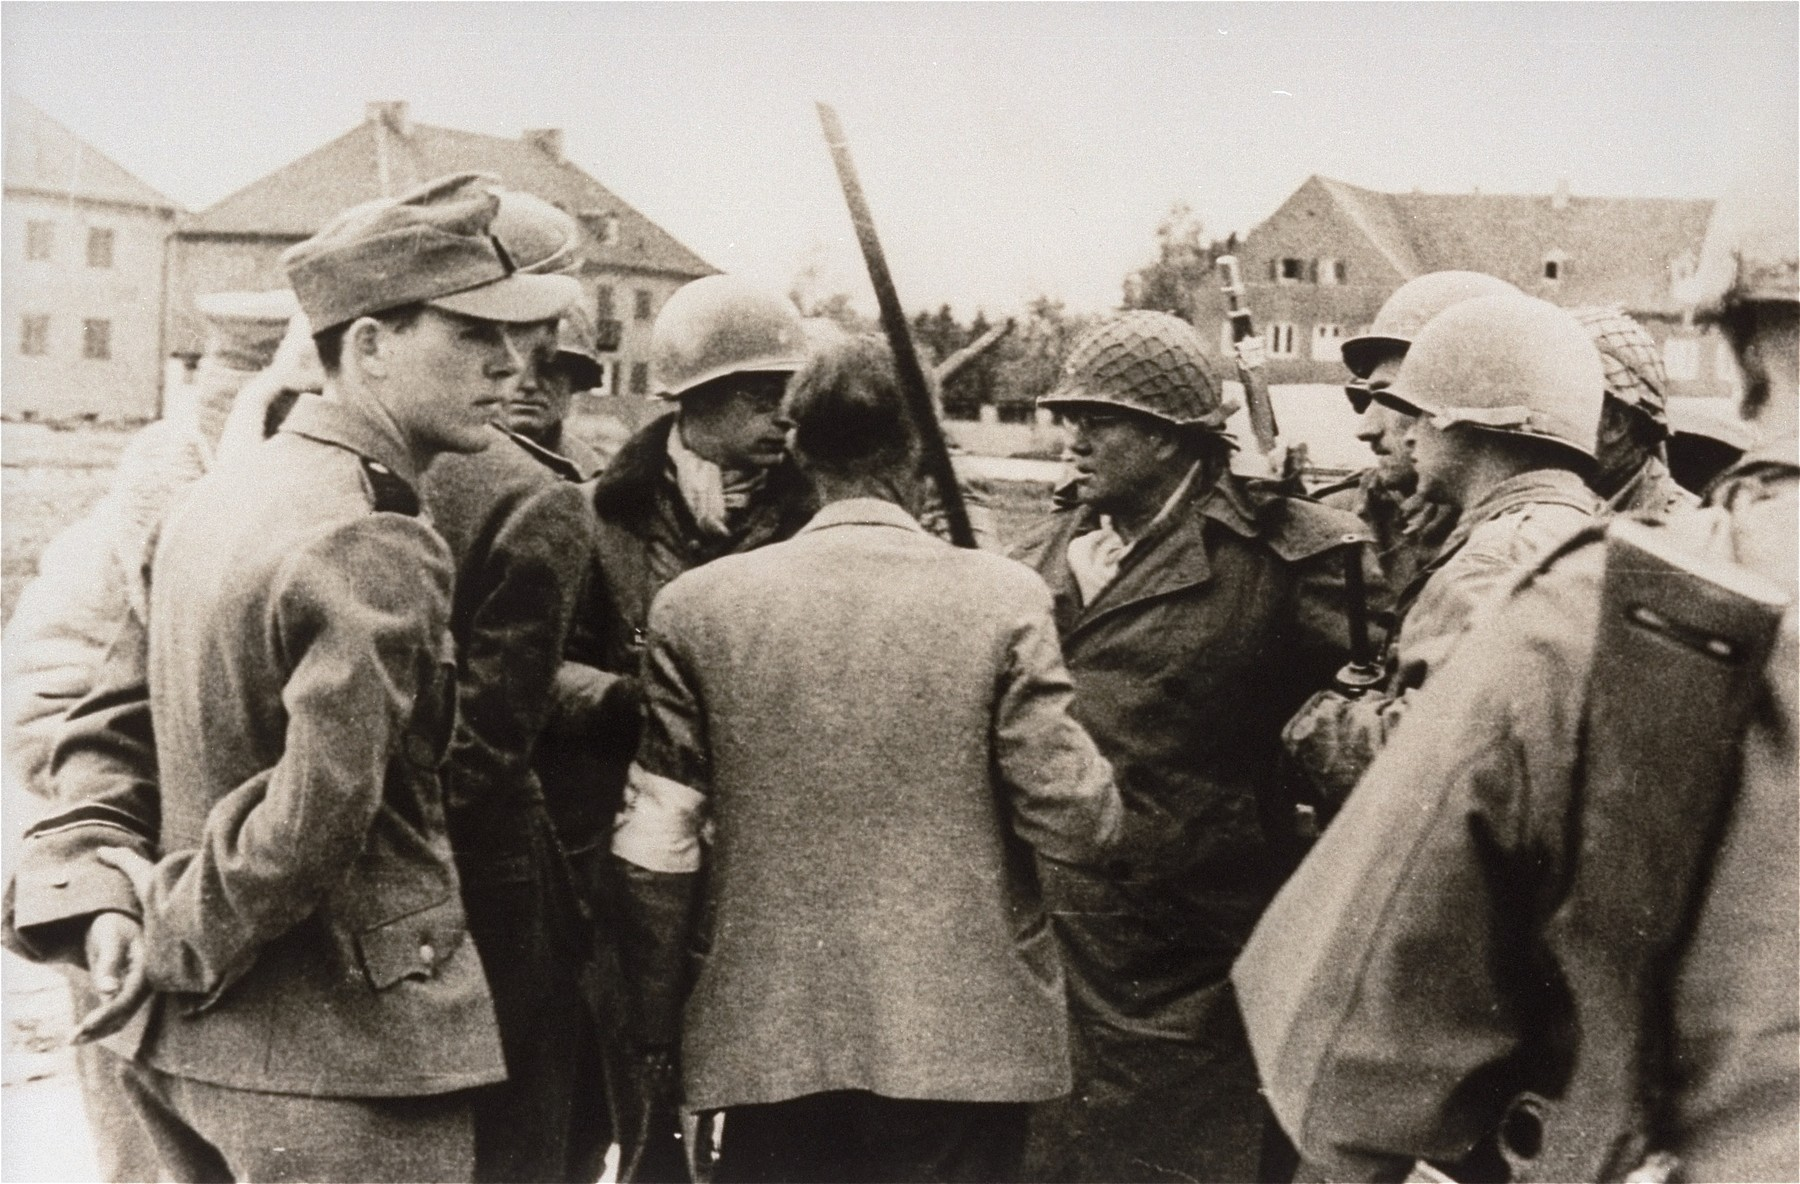 General Henning Linden, assistant commanding general, 42nd Rainbow Infantry Division, confers with various officials during the liberation and surrender of the Dachau concentration camp.   Pictured from left to right are: an aide to SS Lt. Wickert, who surrendered the camp; Lt. Wickert (partially hidden by his aide); Paul M.G. Levy, a Belgian journalist attached to SHAEF, who is serving as an interpreter; Dr. Victor Maurer (back to the camera), the delegate of the International Red Cross, who arranged the terms of the surrender; General Henning Linden; Linden's bodyguards.  Maurer is holding a makeshift flag of surrender constructed from a broomstick; [oversize print]